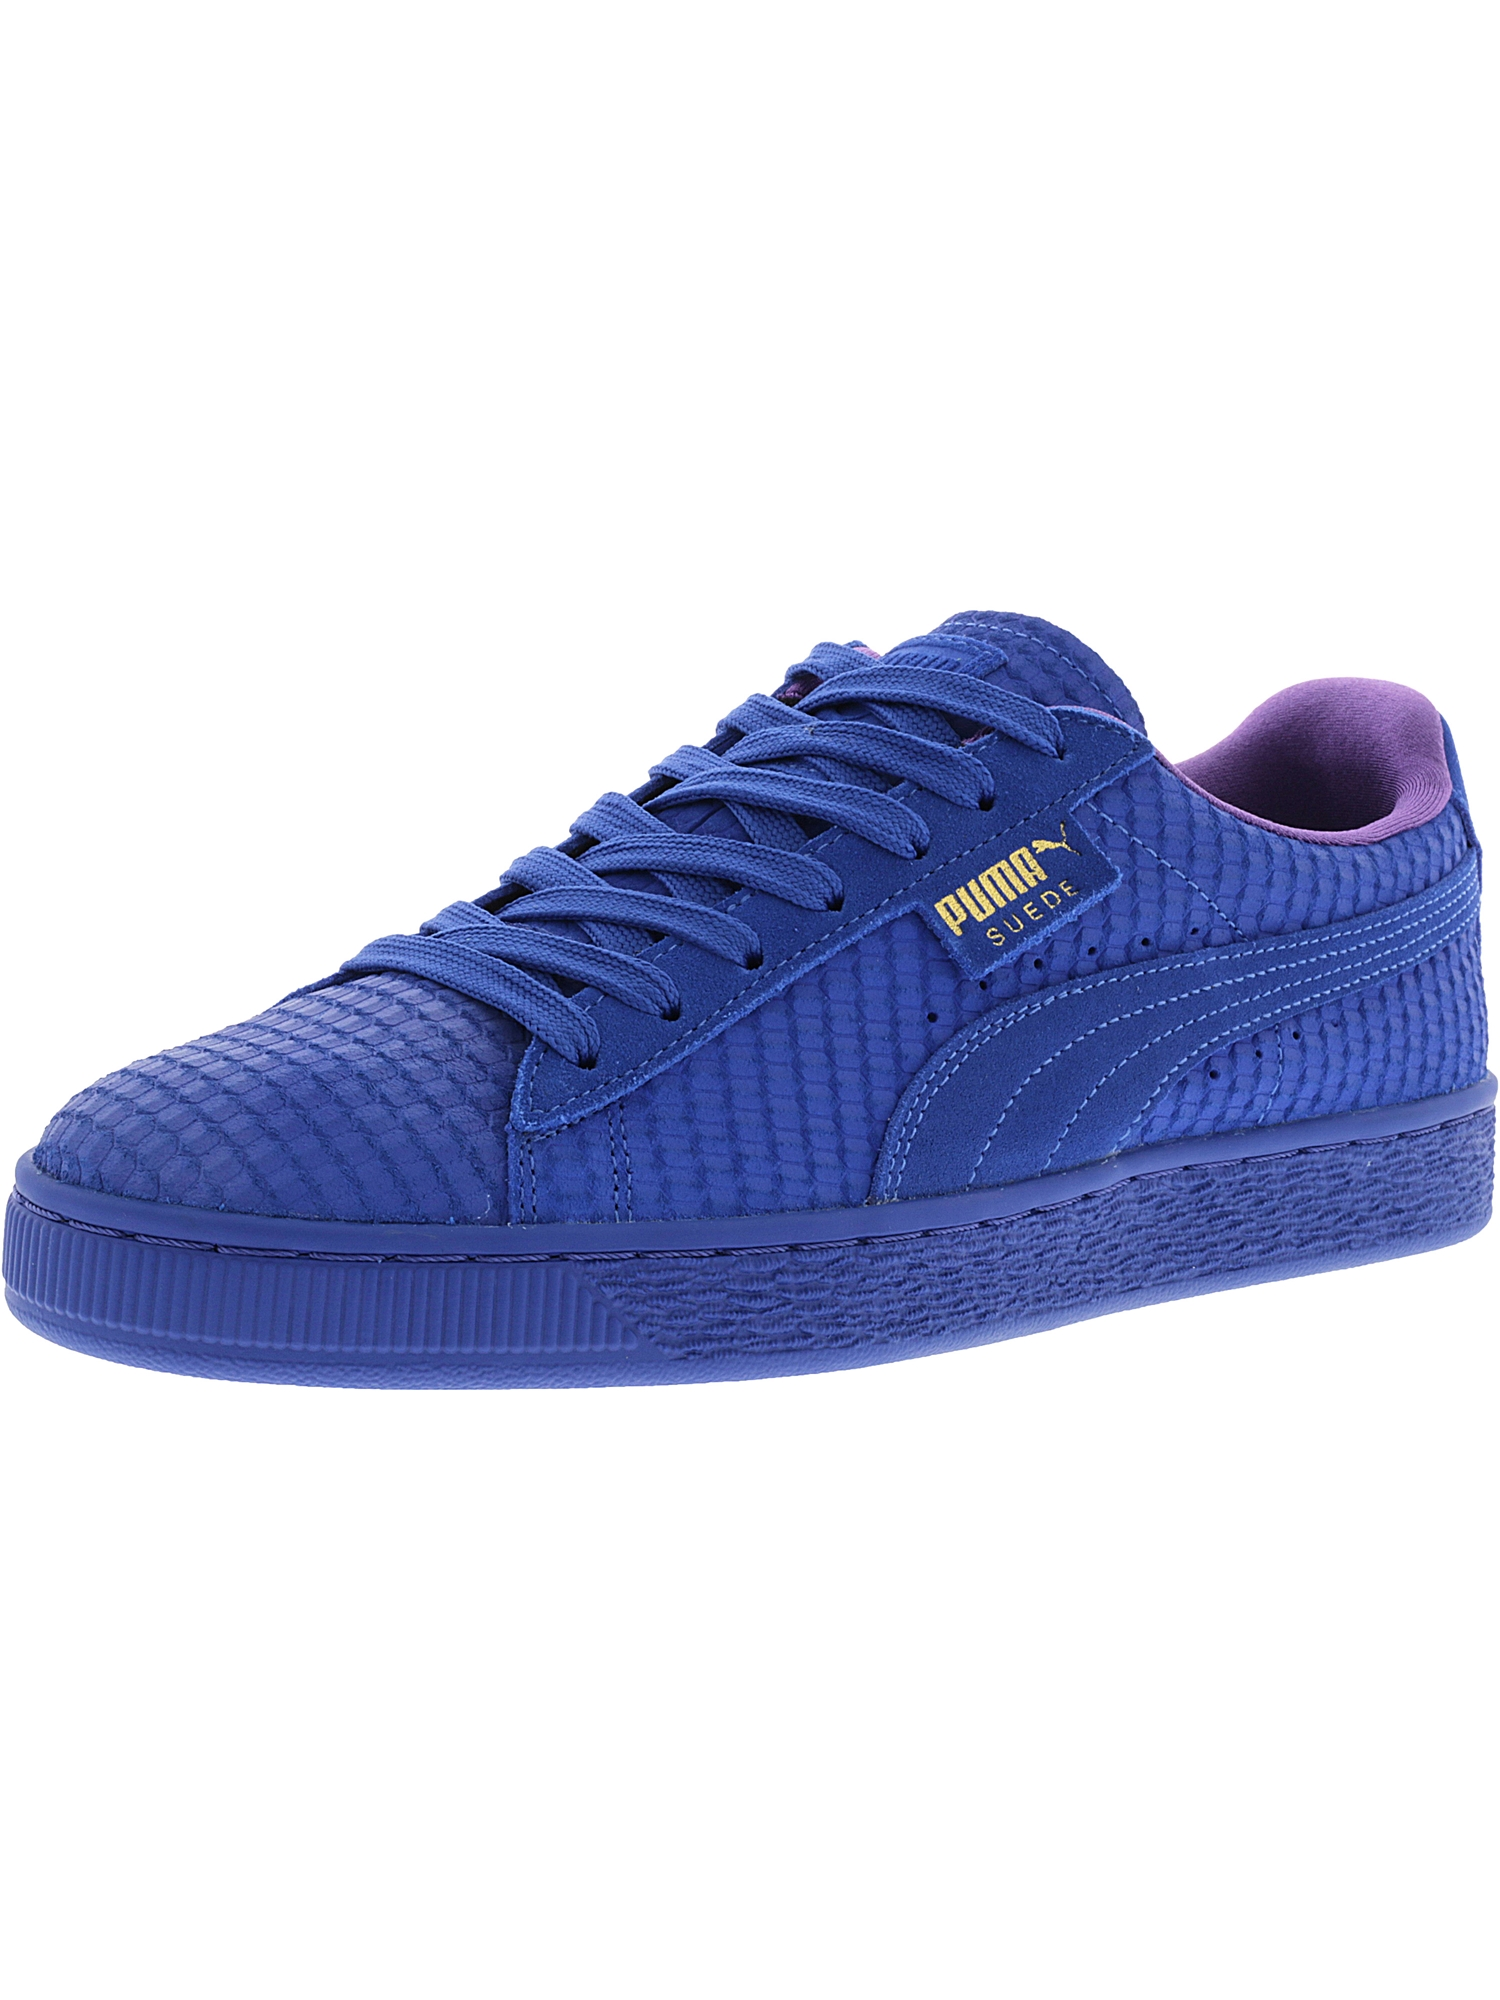 Puma Men's Suede Classic Archive Aop Royal / Team Gold Ankle-High Fashion Sneaker - 11M